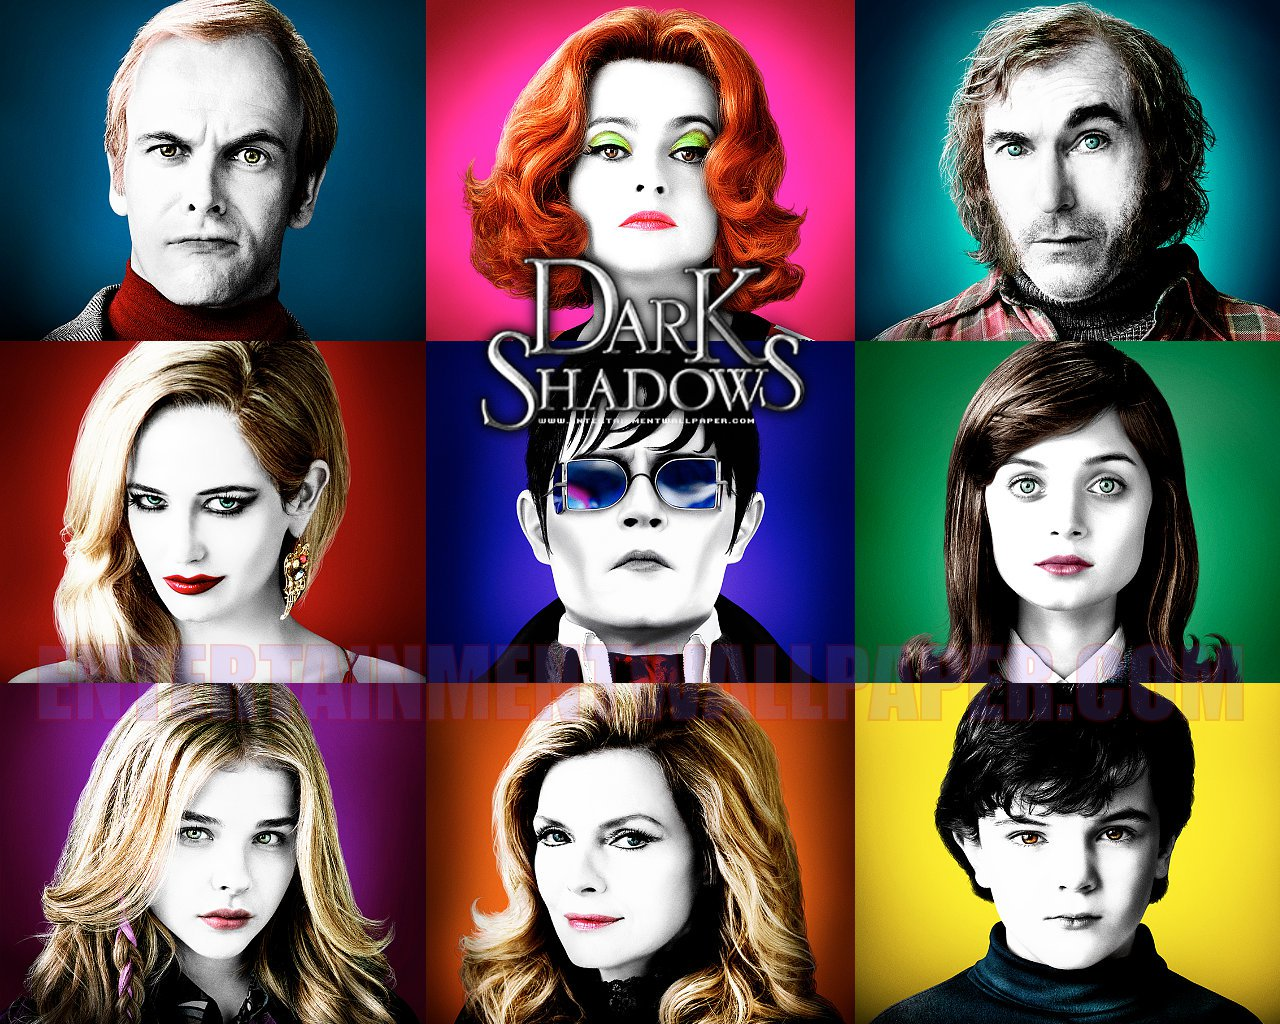 tv show dark shadows wallpaper 10031525 size 1280x1024 more dark 1280x1024